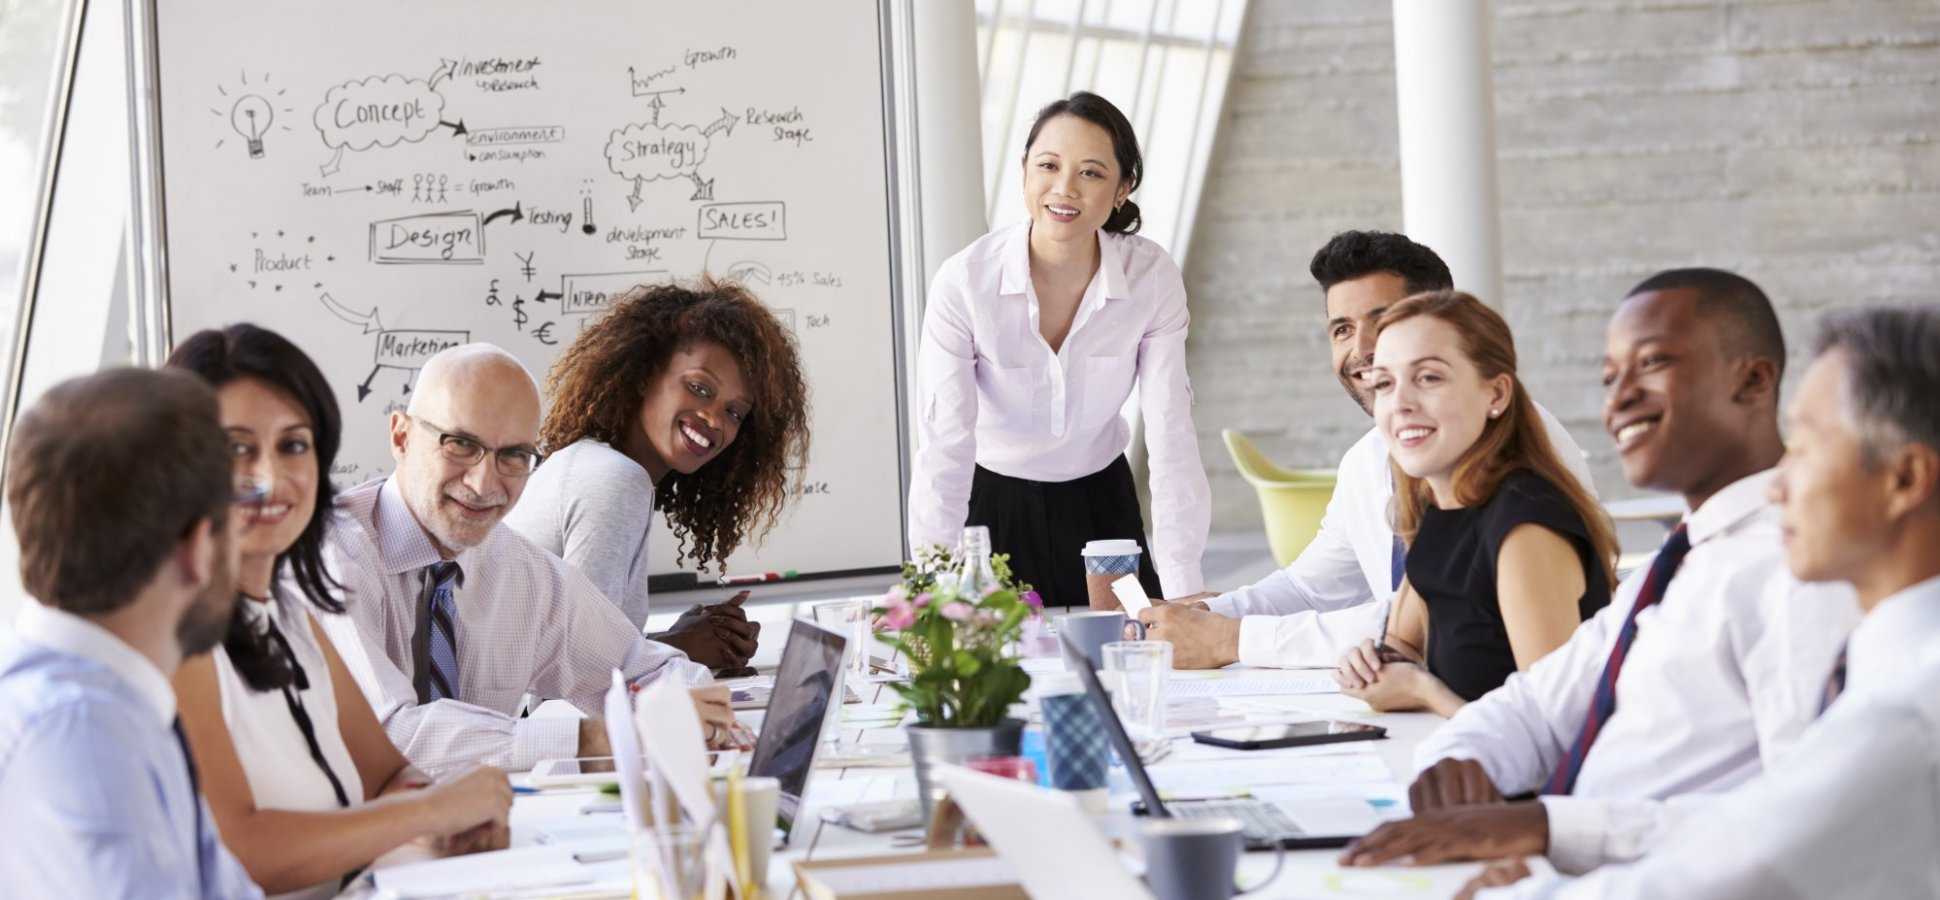 9 Remarkably Effective Ways to Motivate Your Team | Inc.com